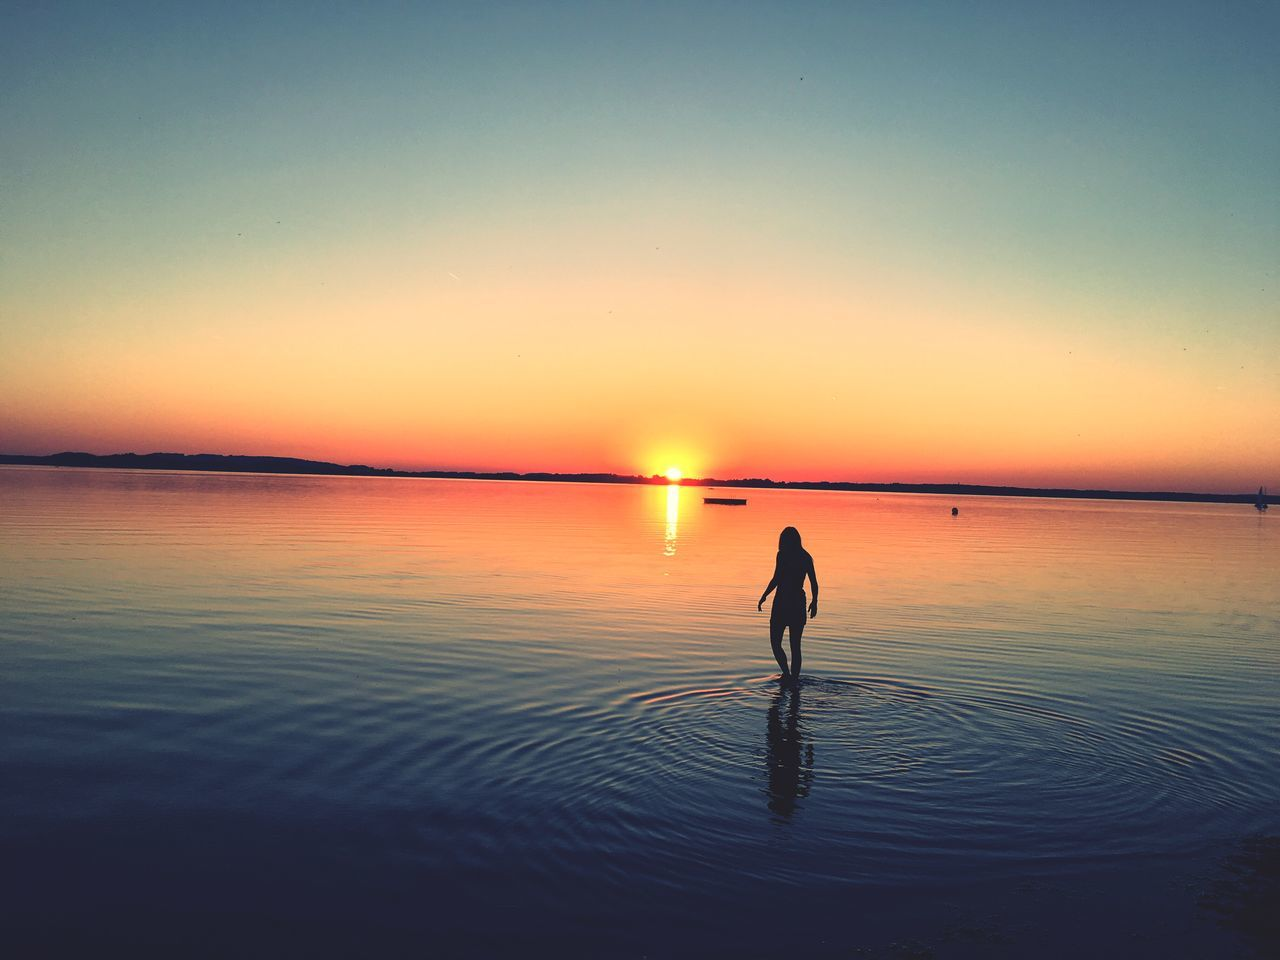 sunset, silhouette, scenics, tranquility, tranquil scene, reflection, nature, beauty in nature, full length, sky, copy space, idyllic, sea, one person, horizon over water, outdoors, sun, water, beach, clear sky, standing, real people, day, people